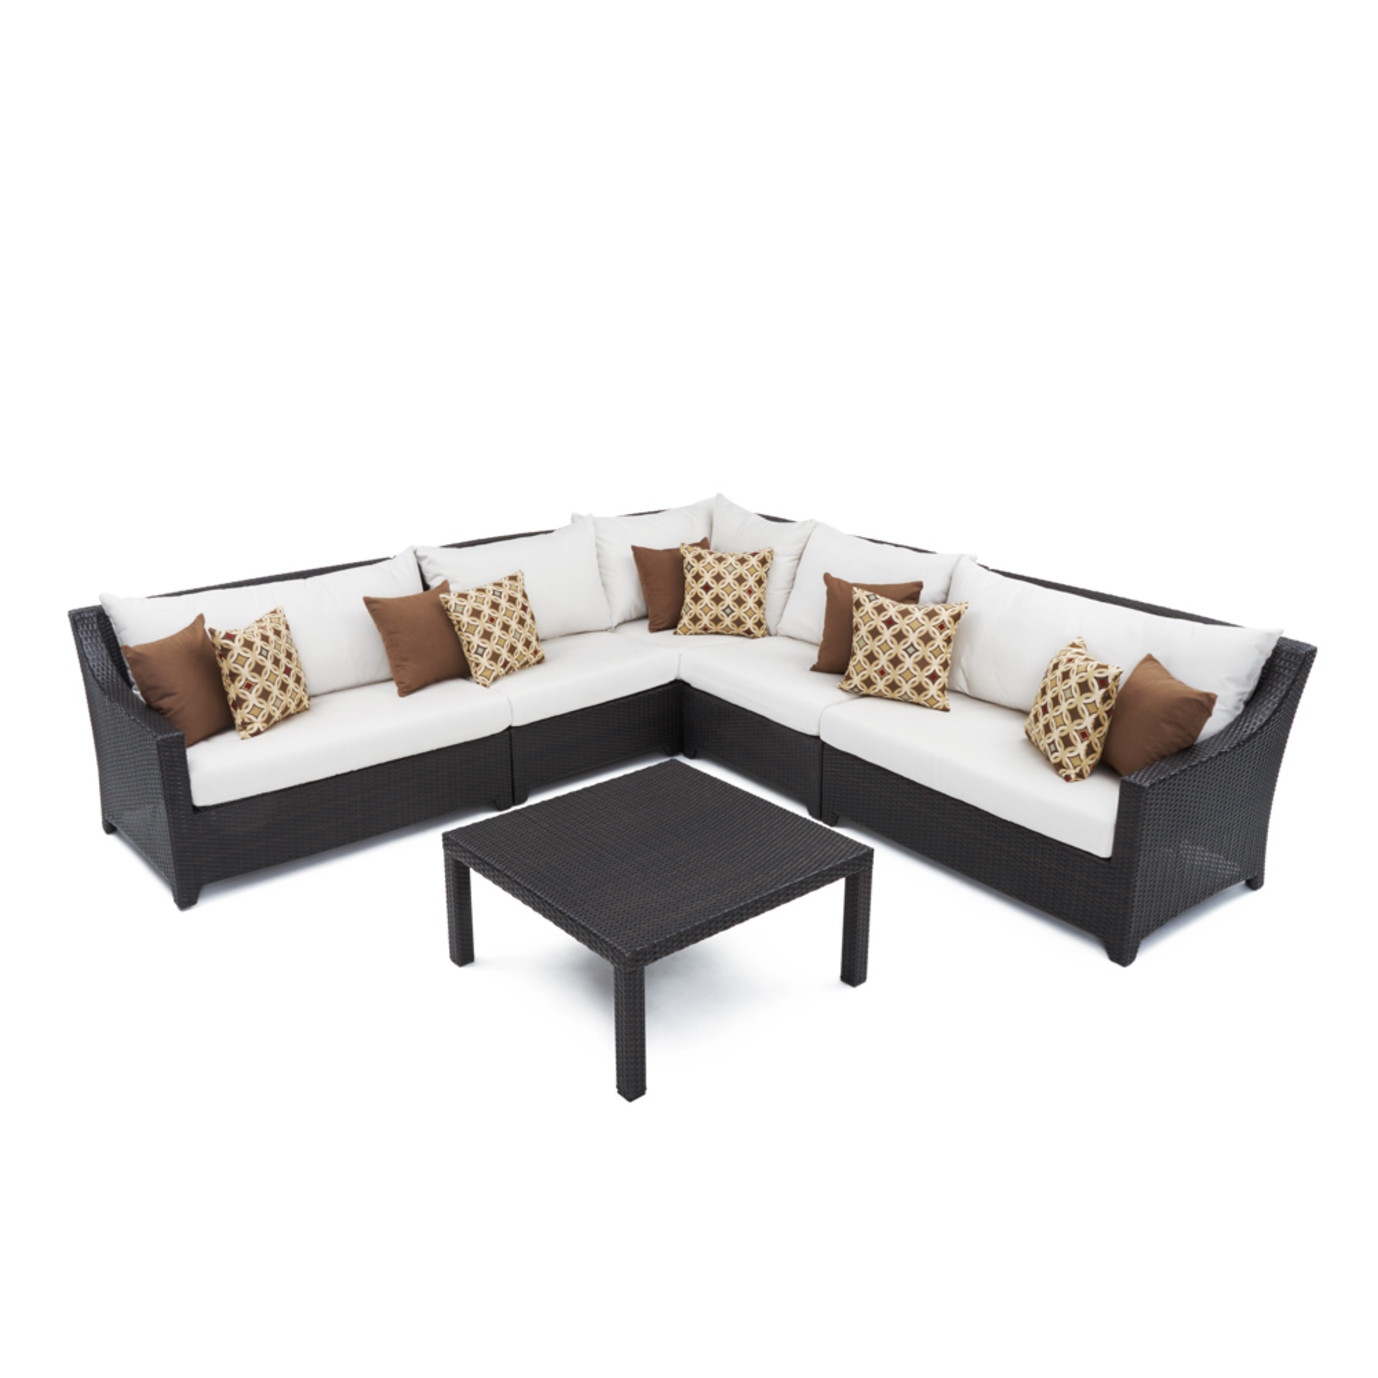 Deco™ 6pc Sectional and Table - Moroccan Cream